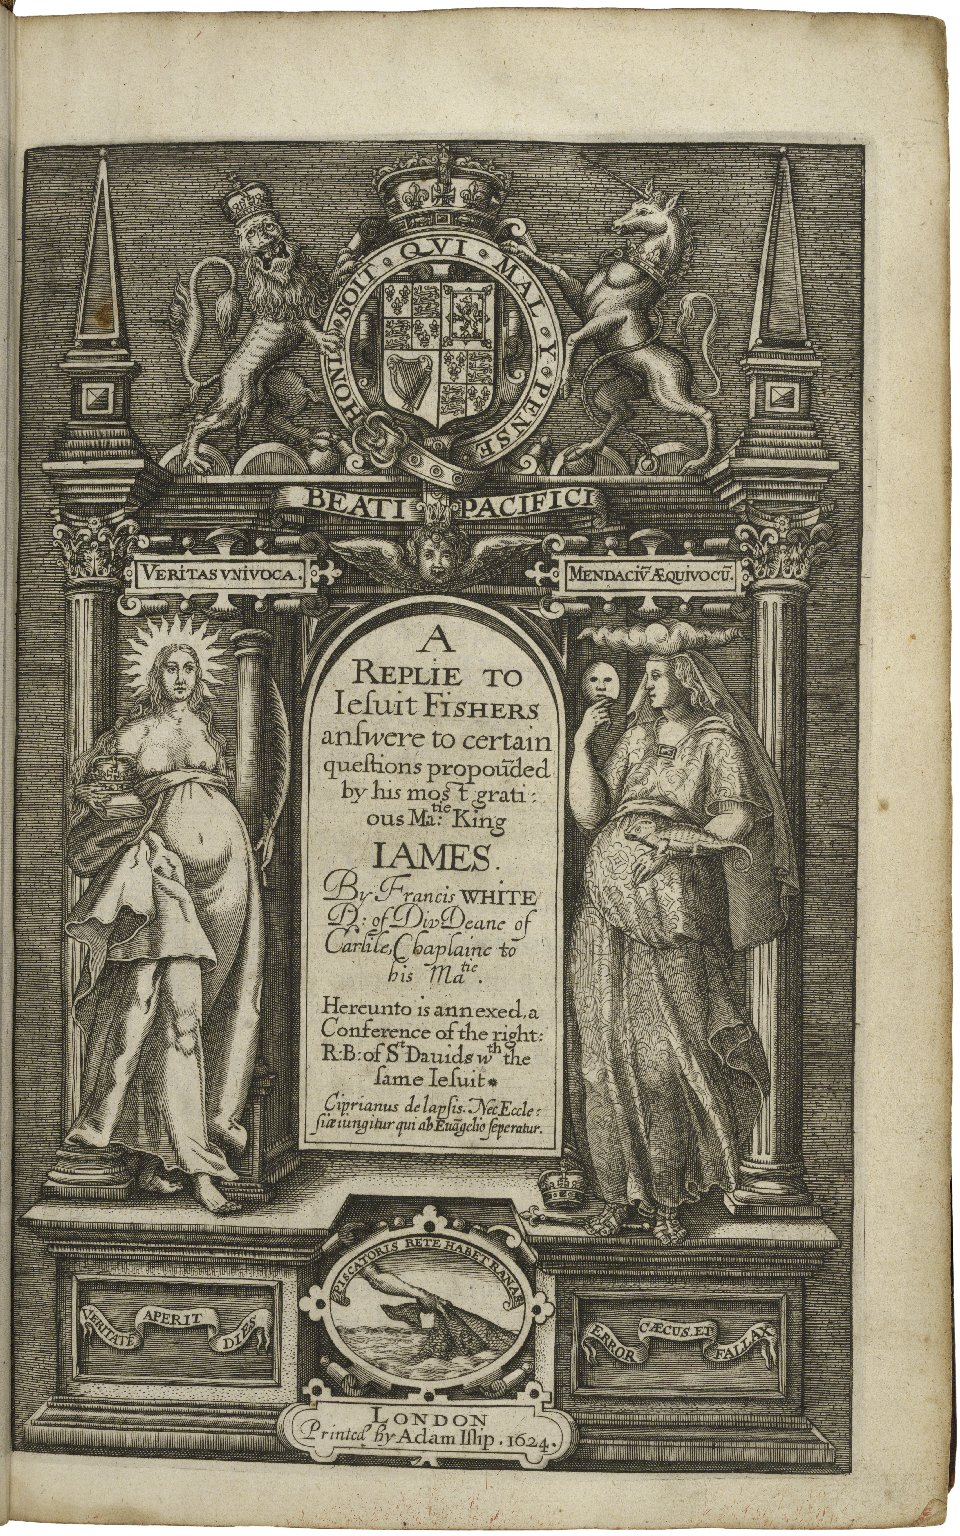 A replie to Iesuit Fishers answere to certain questions propou[n]ded by his most gratious Matie: King Iames. By Francis White D: of Div· deane of Carlile, chaplaine to his Matie. Hereunto is annexed, a conference of the right: R: B: of St Dauids wth the s